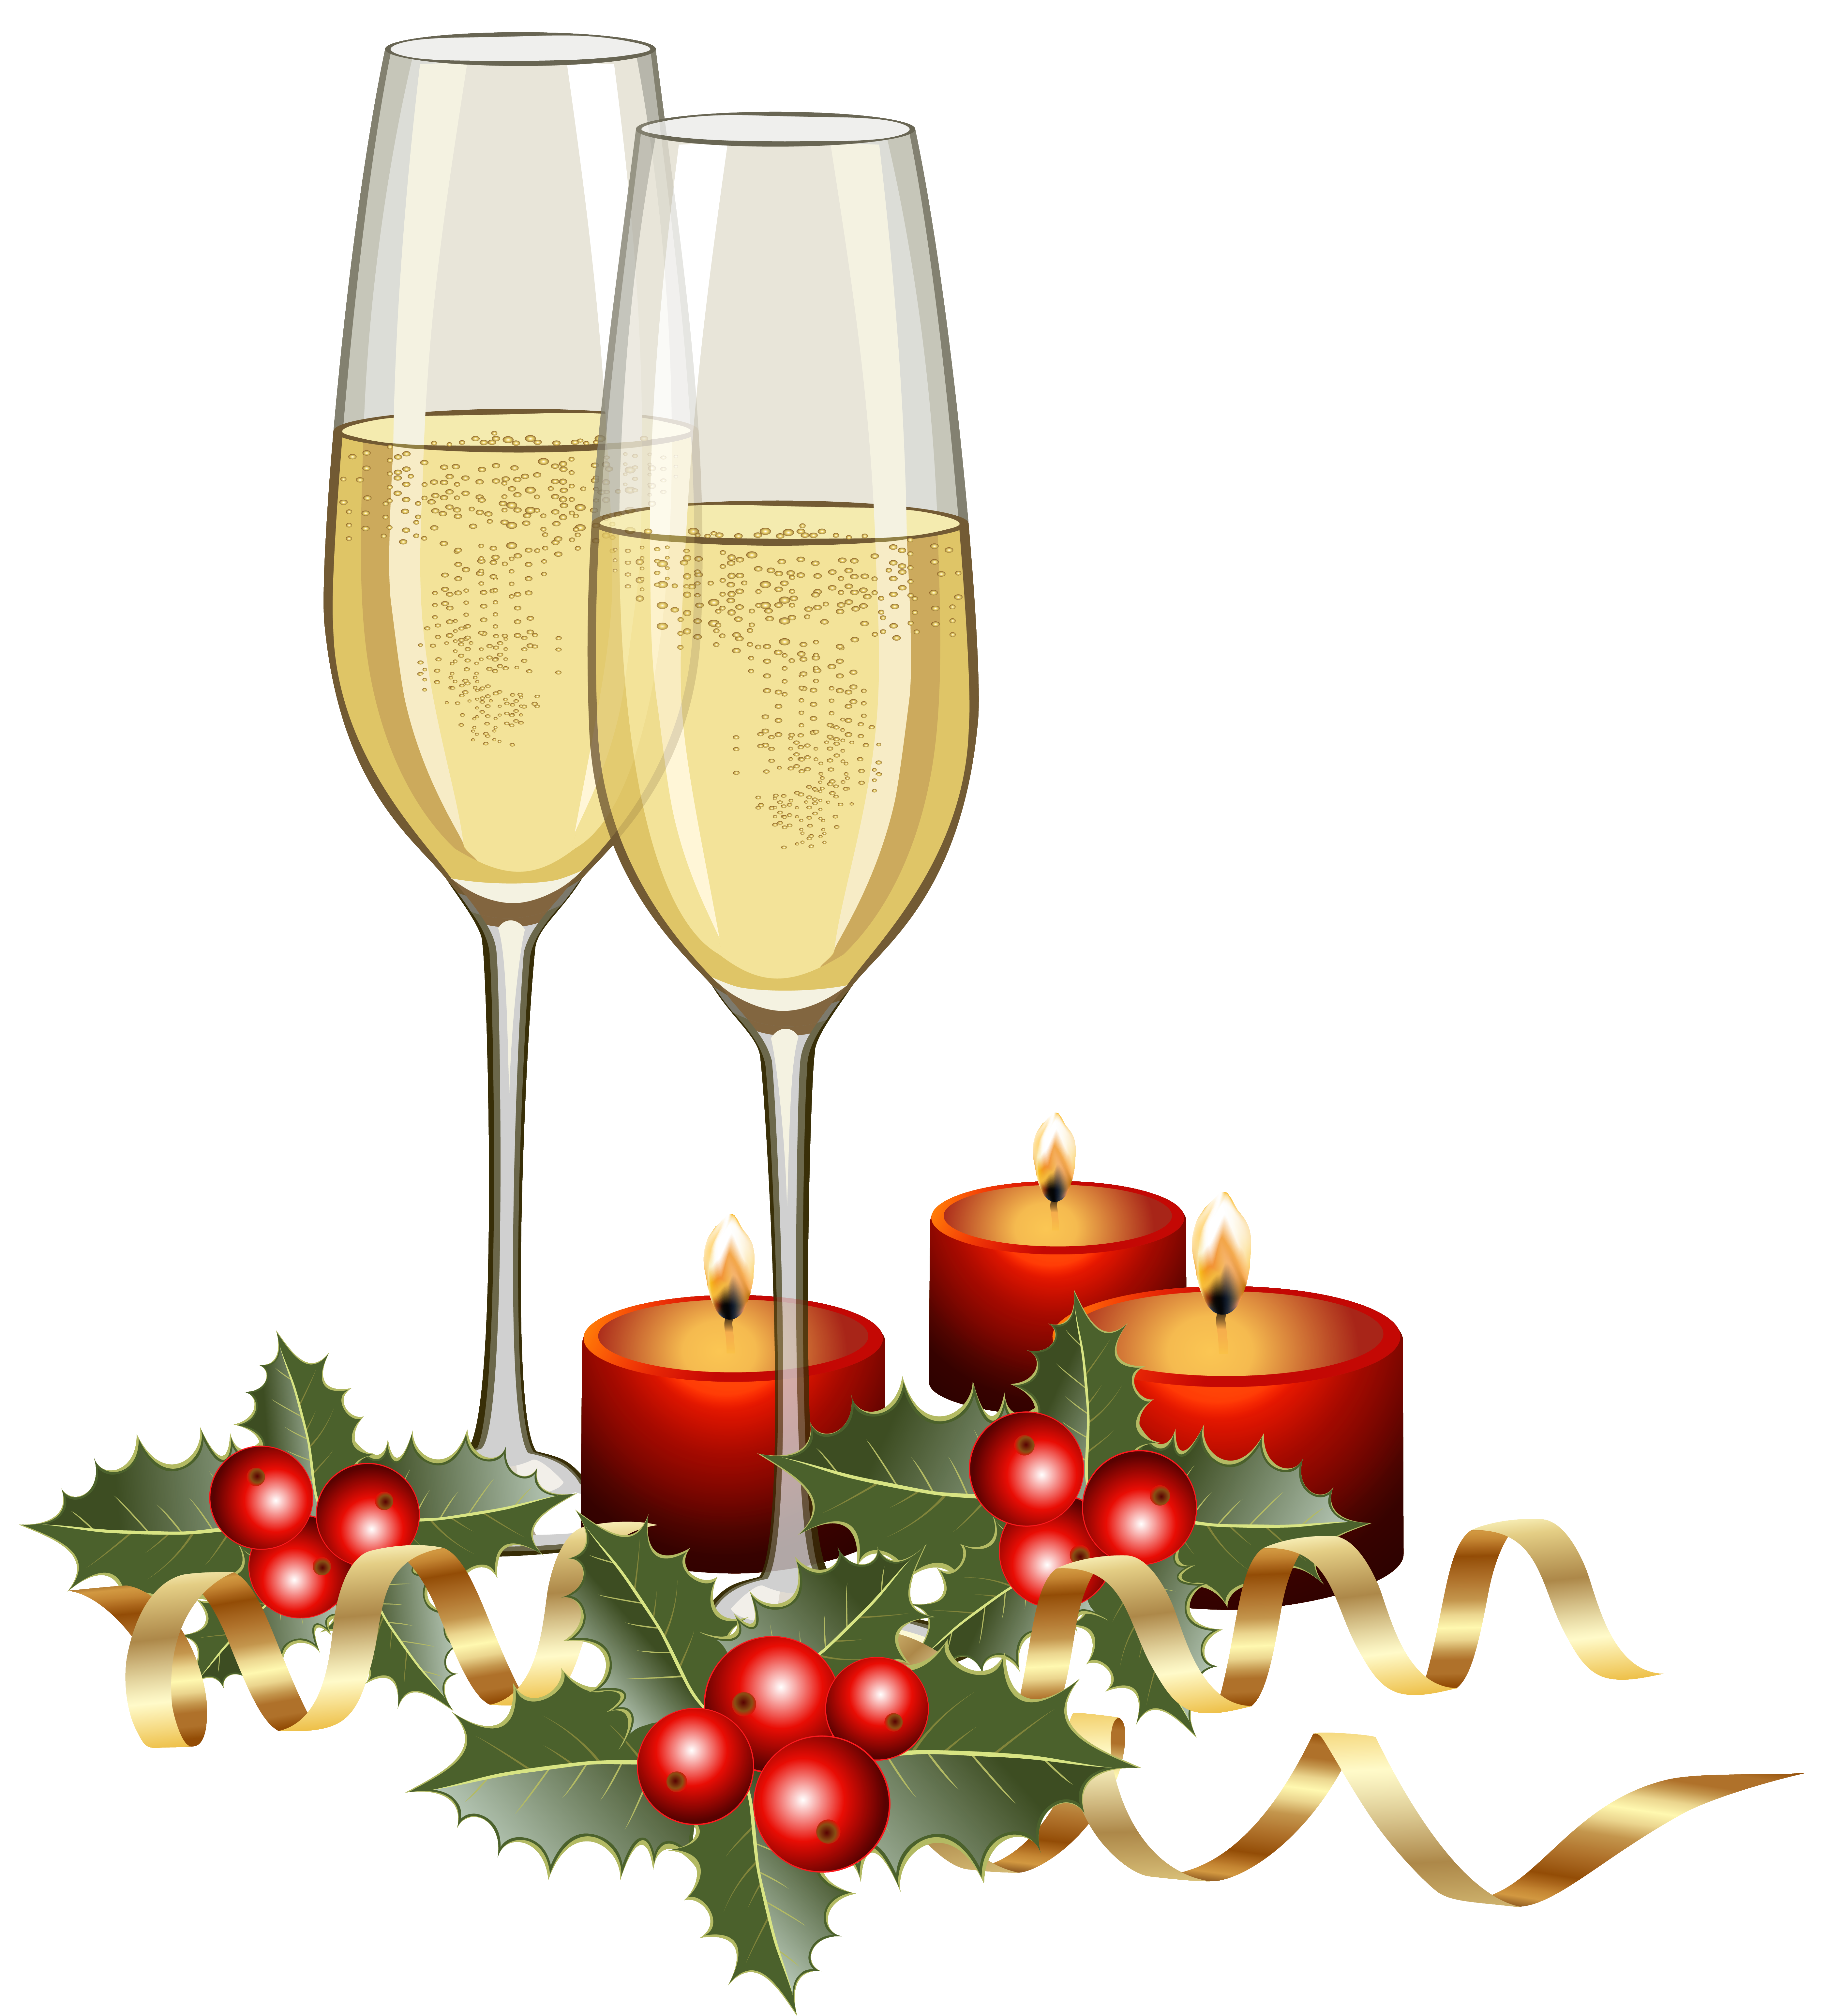 Christmas drink clipart jpg library download Christmas Champagne and Candles PNG Clipart Image | Gallery ... jpg library download